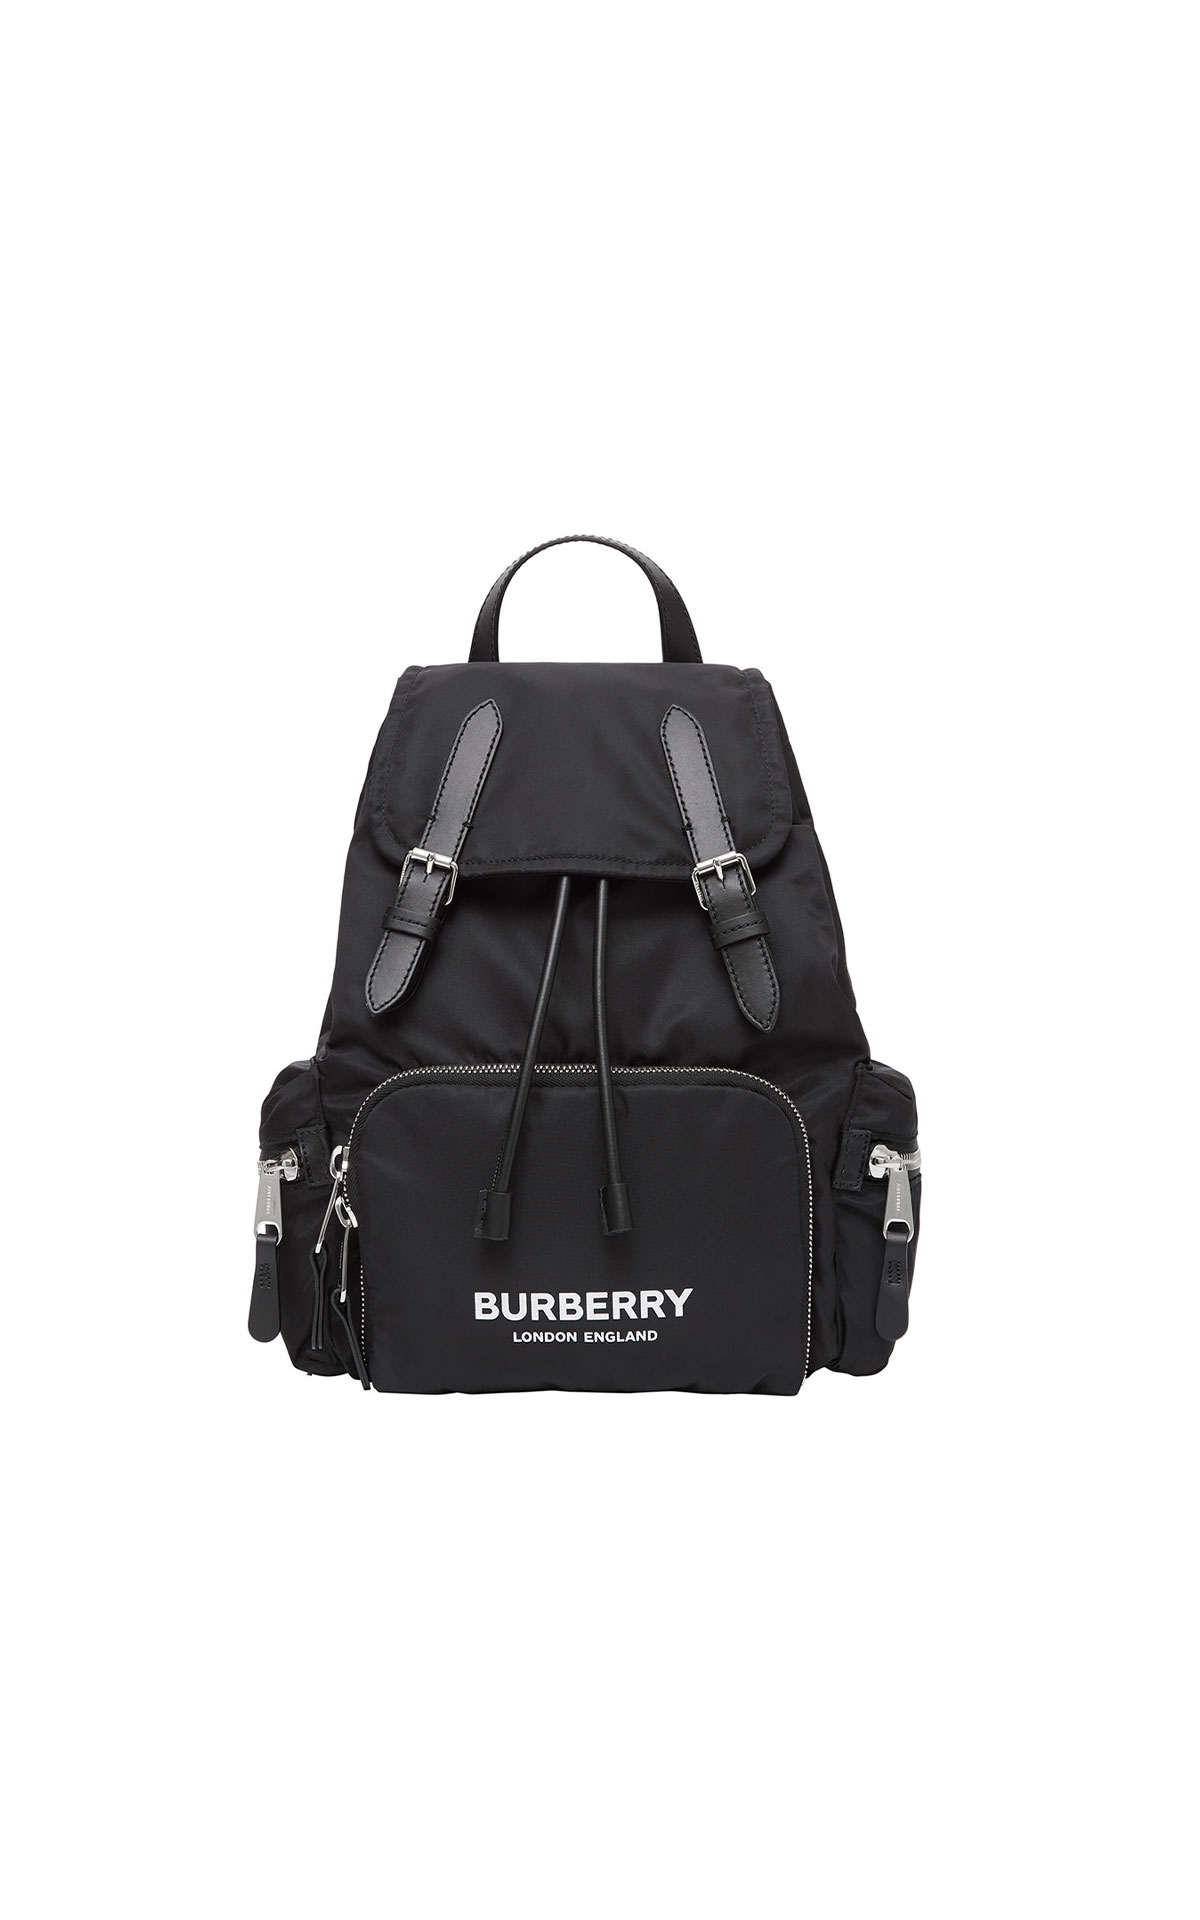 Burberry MD rucksack from Bicester Village